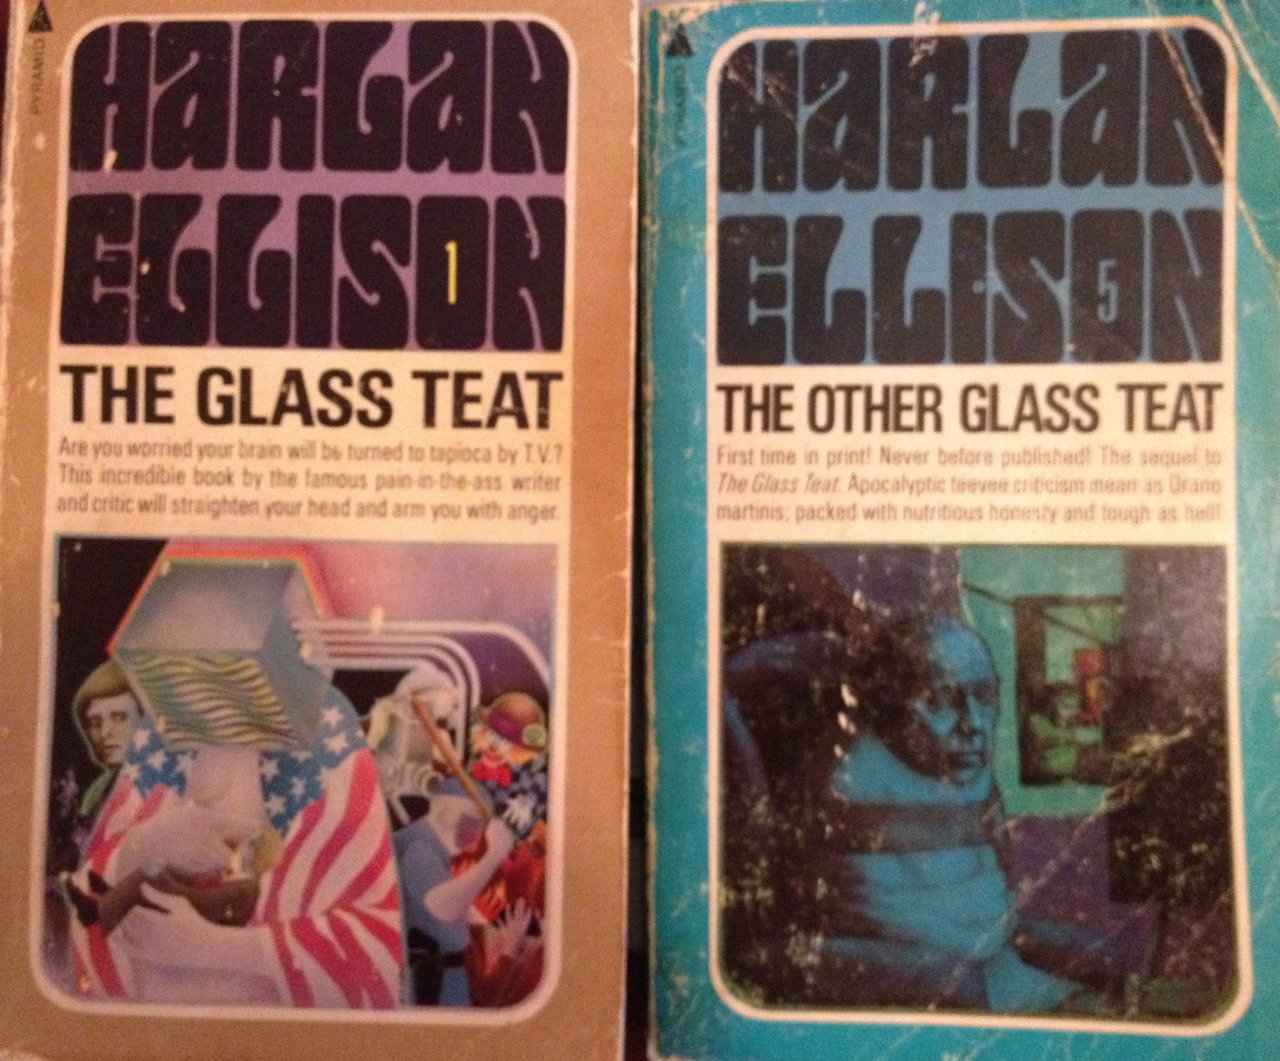 Starting around 1968, Harlan Ellison wrote a column of TV criticism for the L.A. Free Press. Ellison, the prolific speculative fiction author and TV writer, railed against the mediocre prime-time offerings of the day, recounted his battles with TV producers who rewrote and botched his scripts, and took shots at the Nixon administration over Vietnam. The stuff hasn't aged all that well, and I won't be buying the $750 signed limited edition with the updated audio rant. The material was already dated by the time I got my 13-year-old hands on these books with their references to current events and shows that were already half-forgotten (The Mod Squad, Laugh-In, The Smothers Brothers, Julia, First Tuesday, The Name of the Game, The Ghost and Mrs. Muir). I am impressed Ellison managed to watch so much TV without benefit of a VCR or DVR. For me, the books are a sort of personal museum for the 13-year-old me who found resonance in Ellison's boiling, foul-mouthed rage at mass culture. His take on one week's top Nielsen's ratings:  Six of the 10 leading items are wafer-thin, inane, excruciatingly banal situation comedies dealing with a view of American home life that simply does not exist save in the minds of polyannas and outpatients from the Menninger Foundation. .. While their world gets ripped along the dotted line, the average middle-class consumer-slaphappy American opts for escapist entertainment of the most vapid sort. …No wonder [there is] such umbrage and outrage by the masscult mind at the doings of the Revolution: they sit night in and night out sucking up fantasy that tells them even hillbilly idiots with billions living in Beverly Hills are just plain folks.